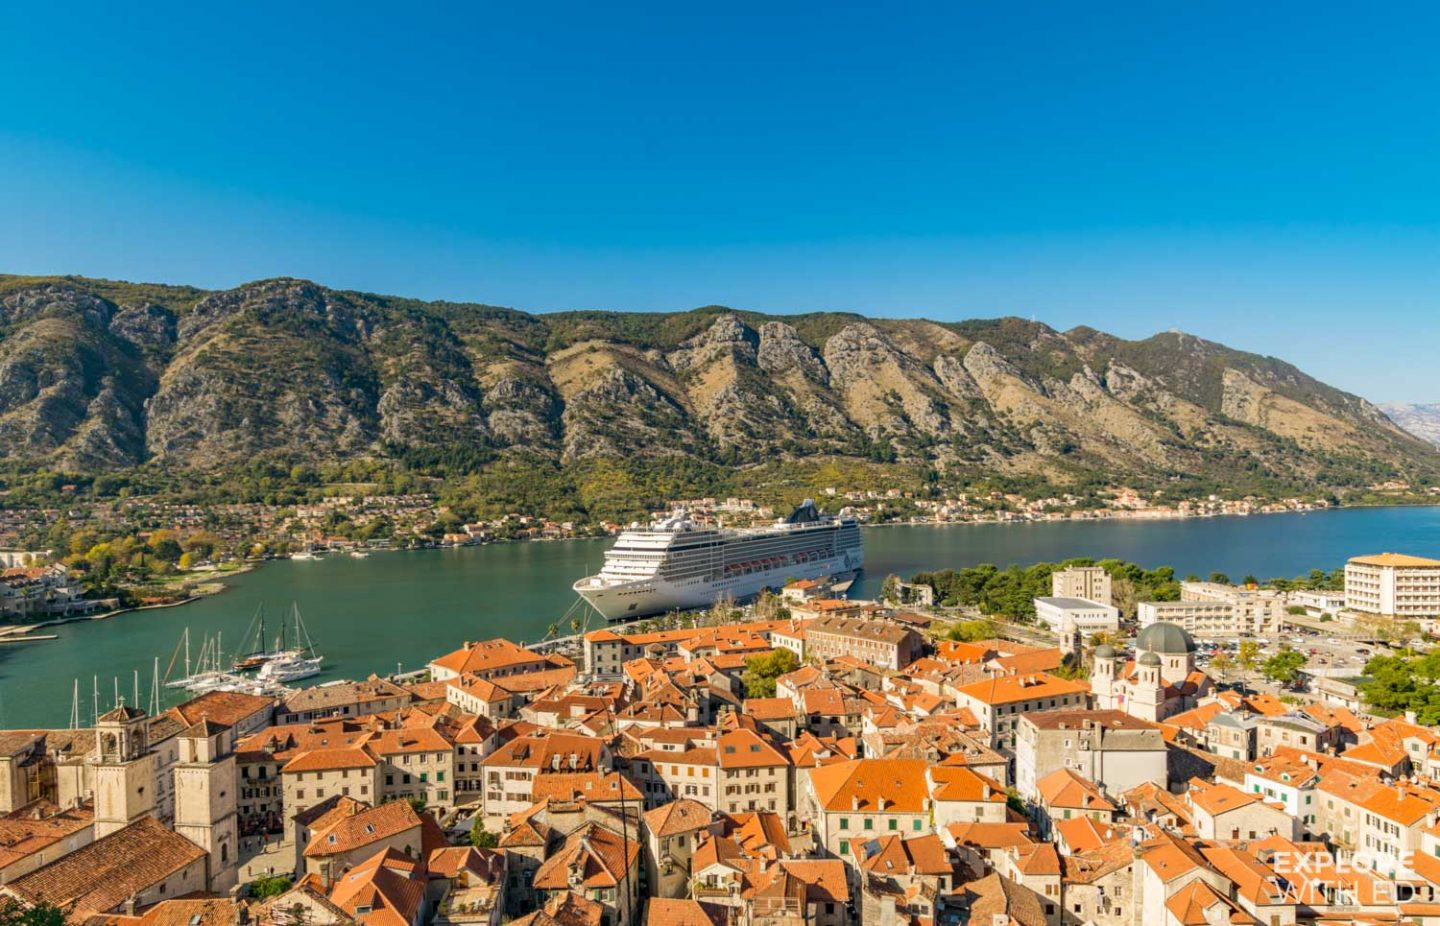 MSC Cruise to Kotor Montenegro